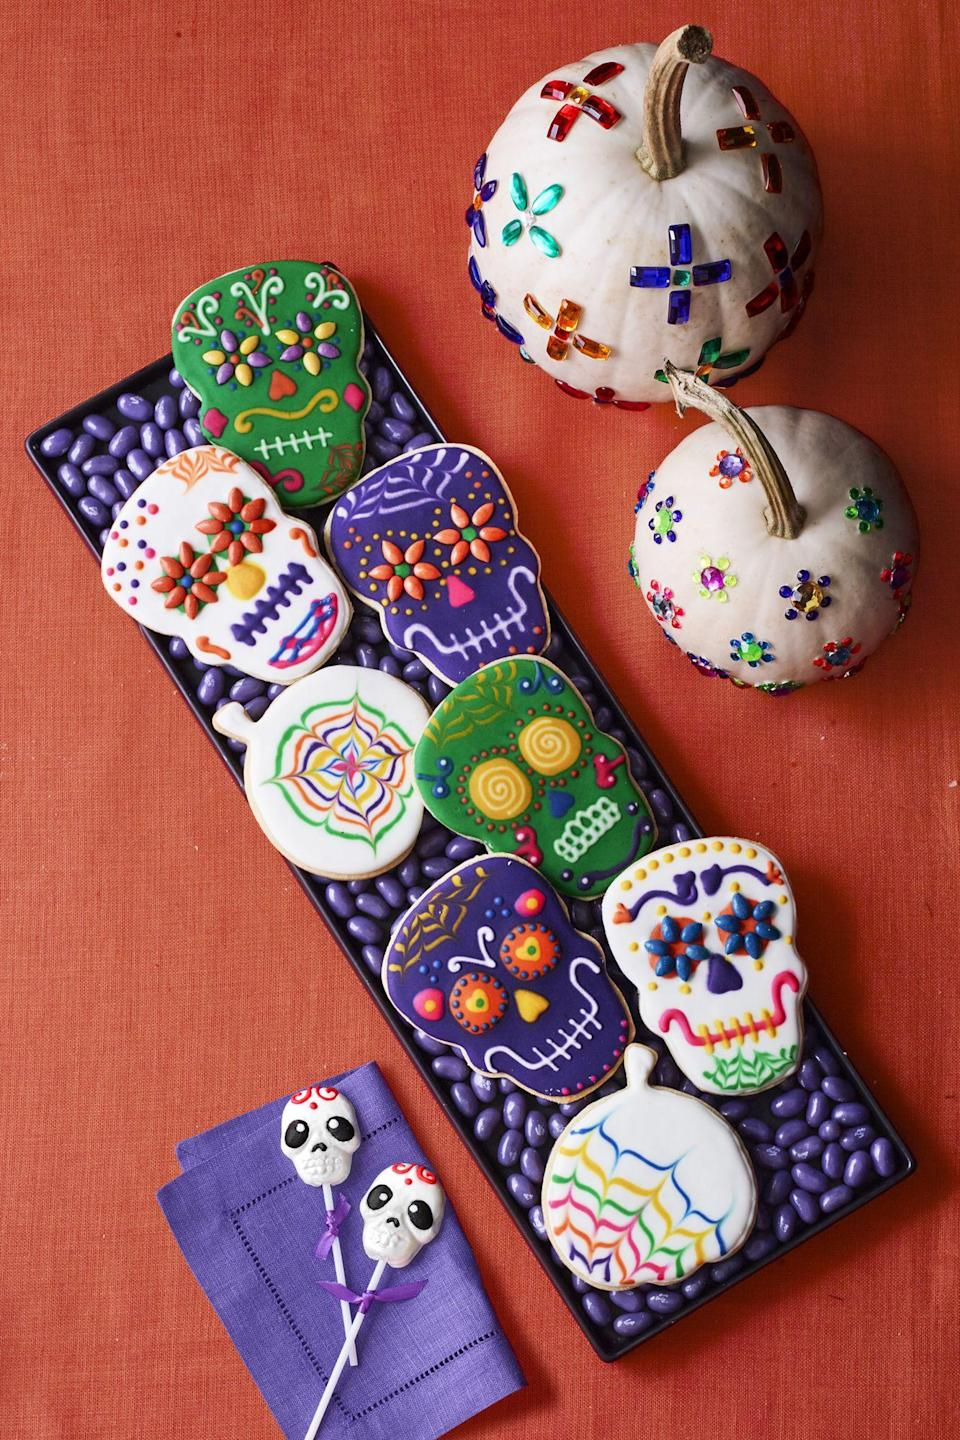 "<p>Serve these colorful frosted cookies at your Halloween party and it's sure to be a hit.</p><p><strong><a href=""https://www.womansday.com/food-recipes/food-drinks/a23569445/cookie-skulls-and-pumpkin-sugar-cookie-cutouts-recipe/"" rel=""nofollow noopener"" target=""_blank"" data-ylk=""slk:Get the recipe"" class=""link rapid-noclick-resp"">Get the recipe</a>. </strong></p>"